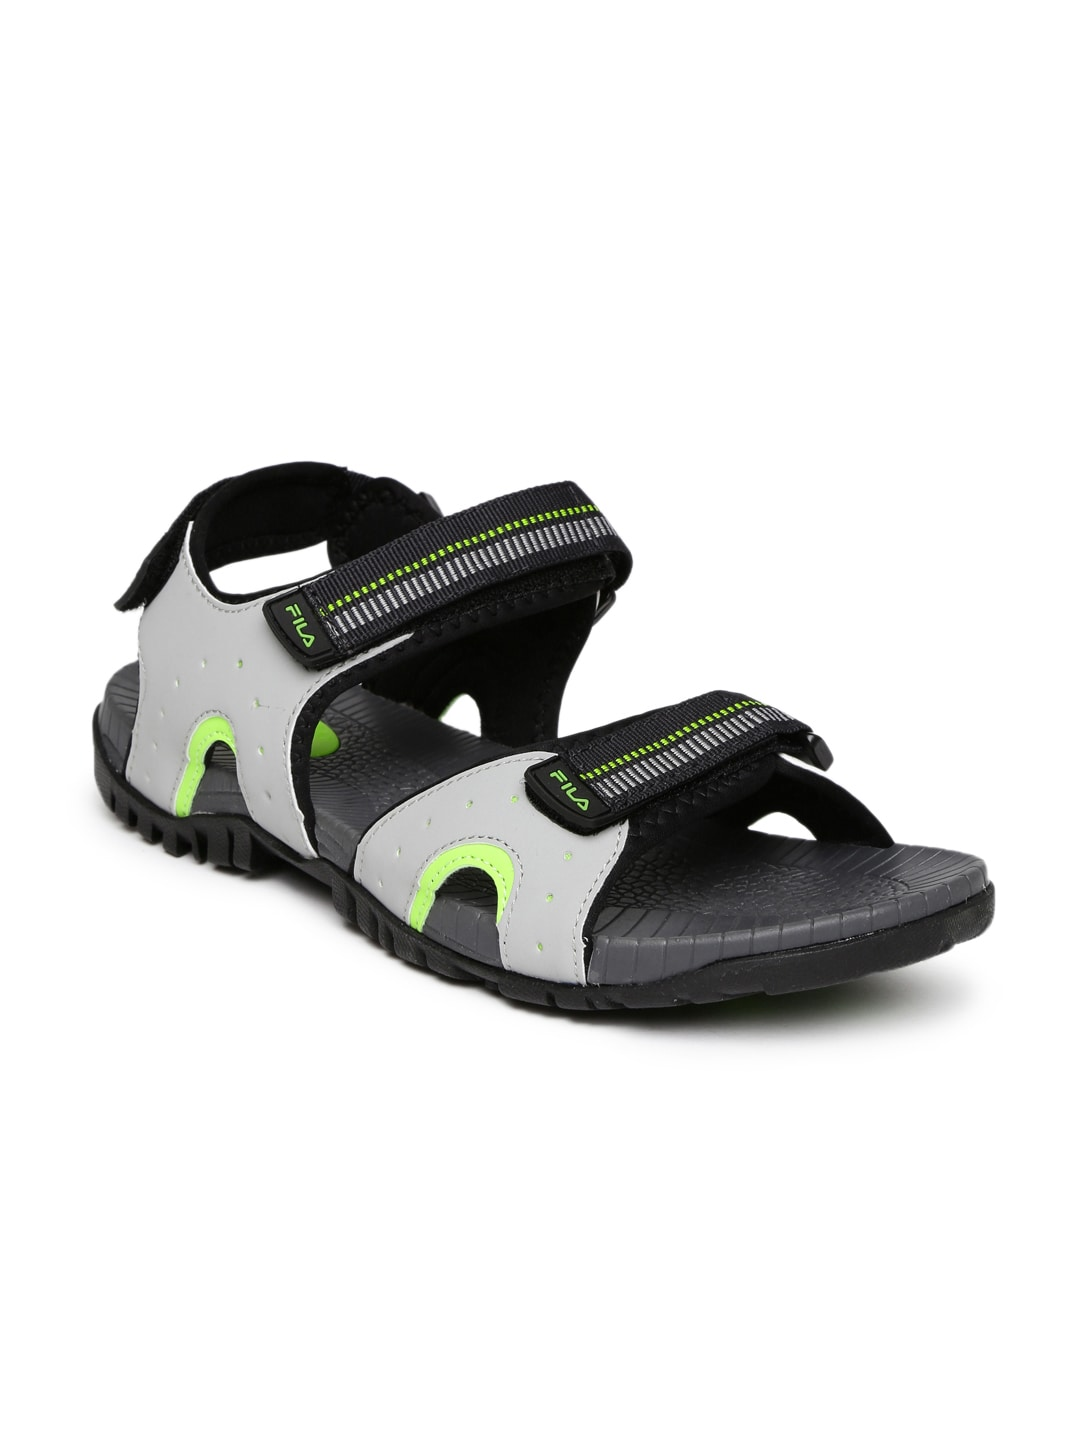 471ffb578f FILA Men Grey & Black Raidon Sports Sandals